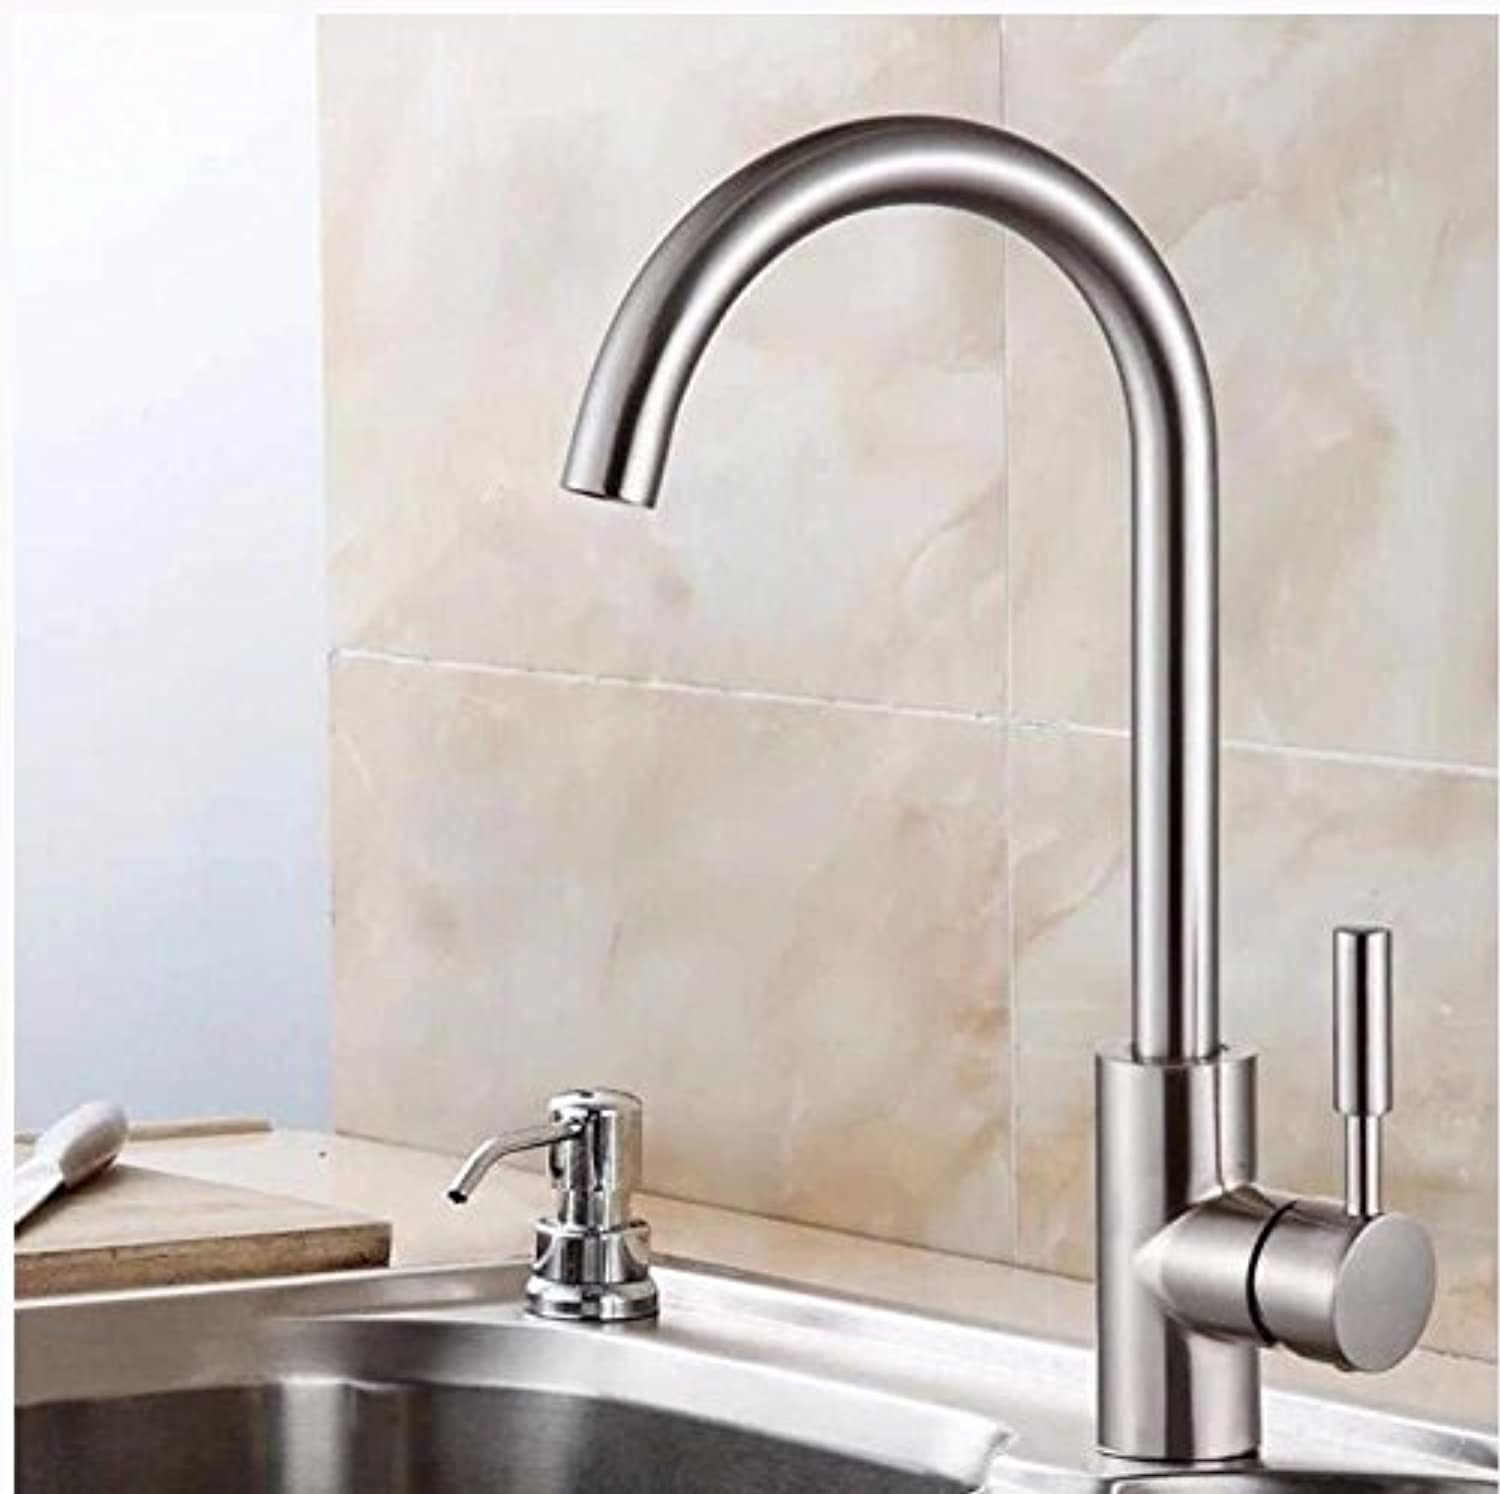 Lpophy Bathroom Sink Mixer Taps Faucet Bath Waterfall Cold and Hot Water Tap for Washroom Bathroom and Kitchen Stainless Steel Hot and Cold redation B